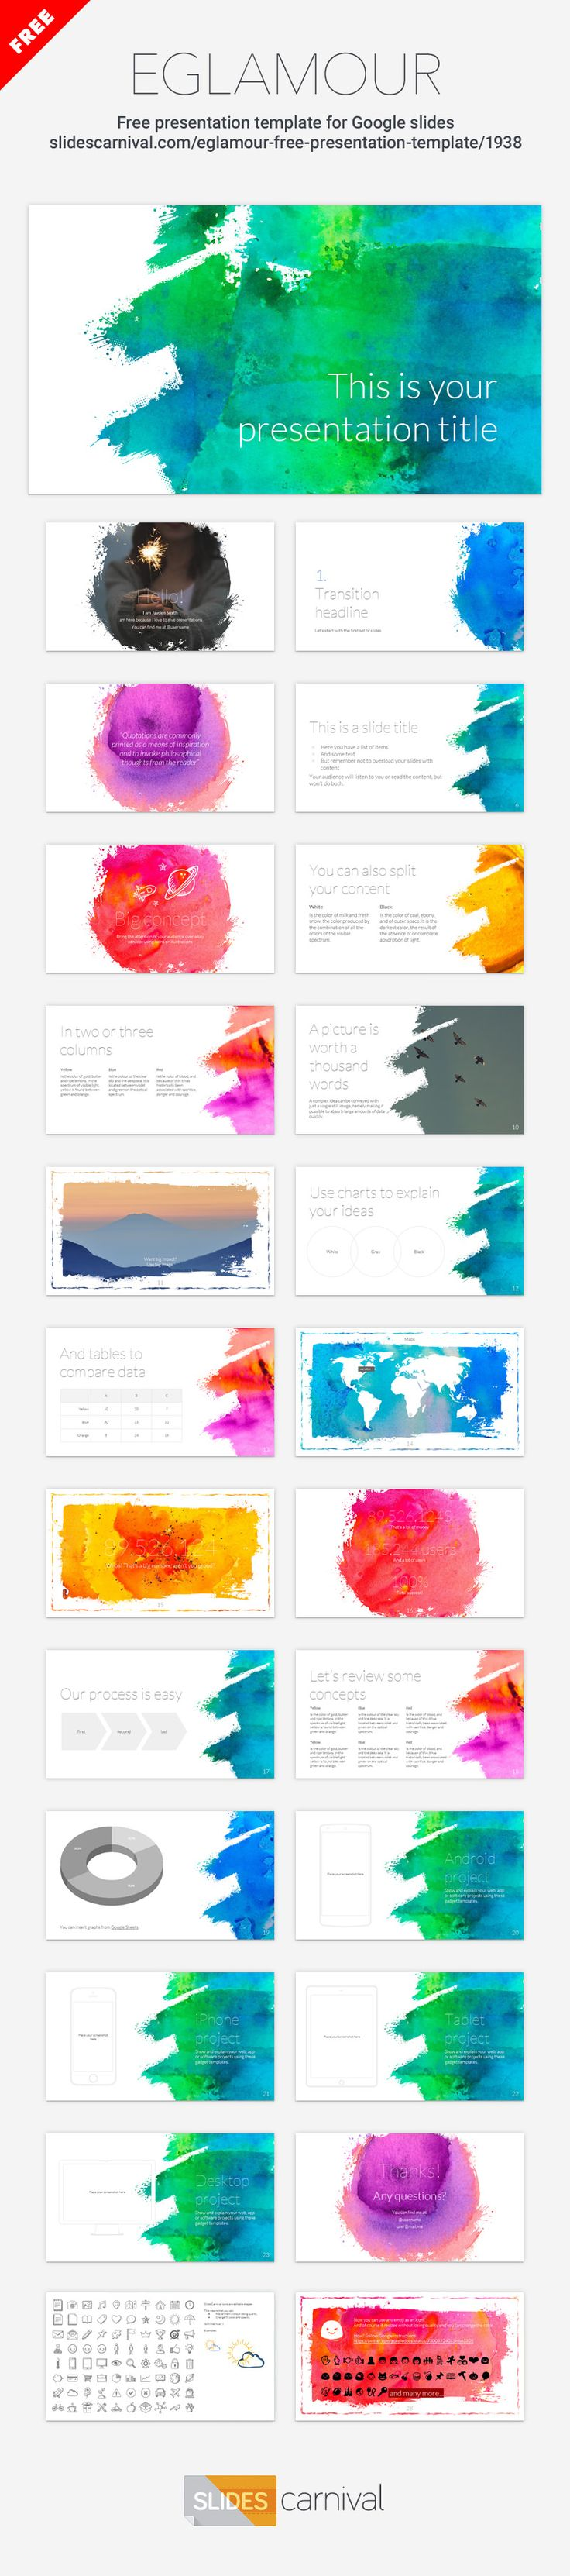 Get creative with your presentation using this artsy template. It uses watercolor textures to create bold and vivid slides, while the text content keeps a minimal and clean style. Talk about creativity, art, DIY or craft projects…